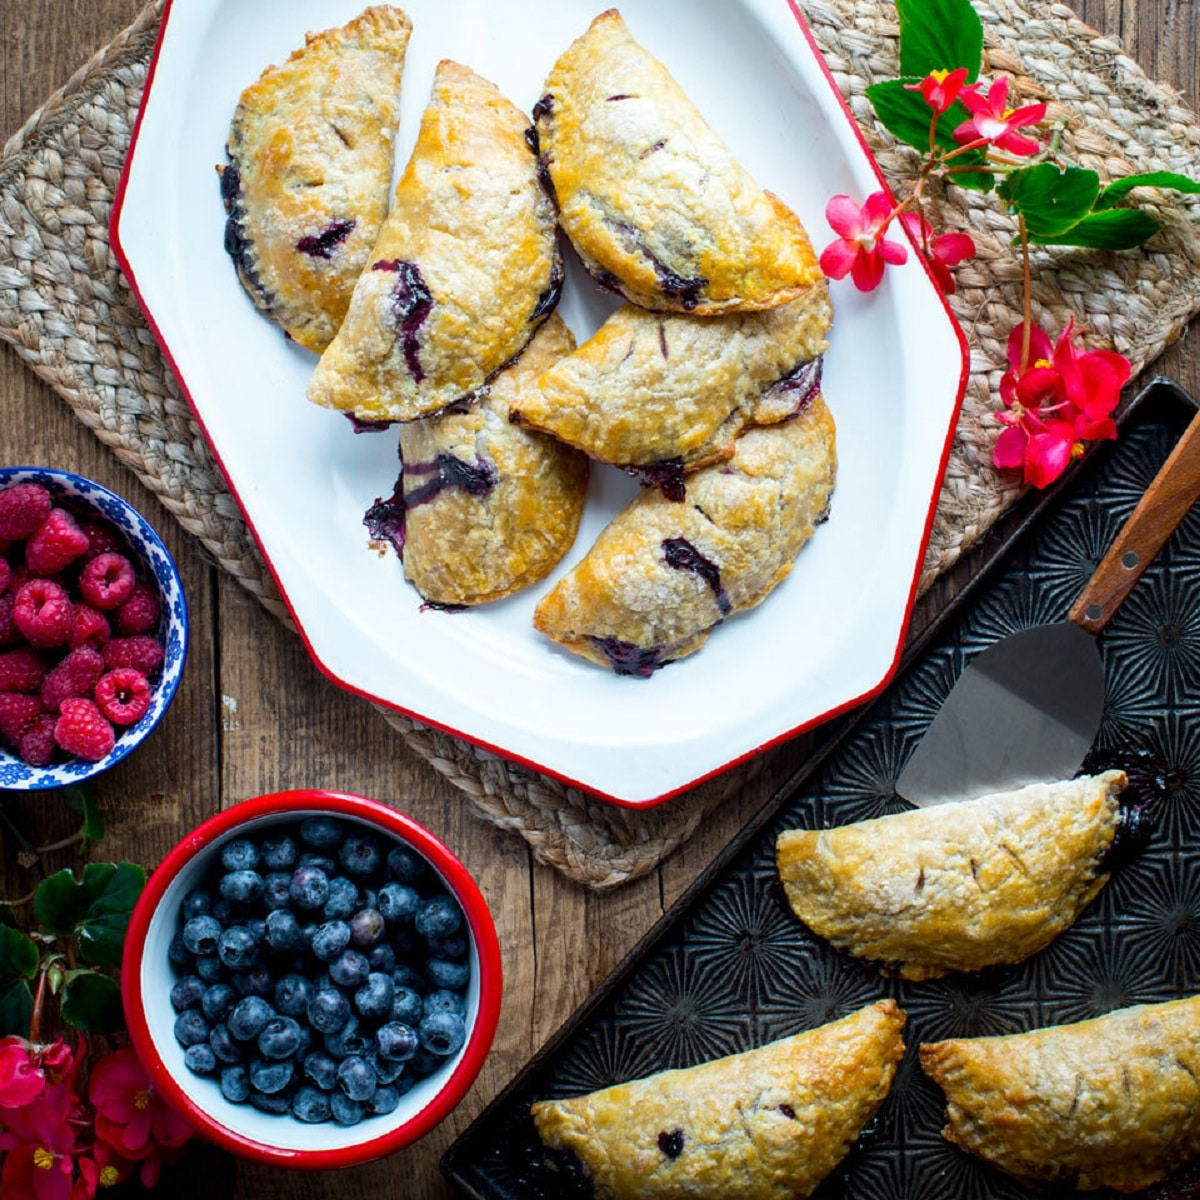 Fried pies stacked on white platter by bowls of raspberries and blueberries